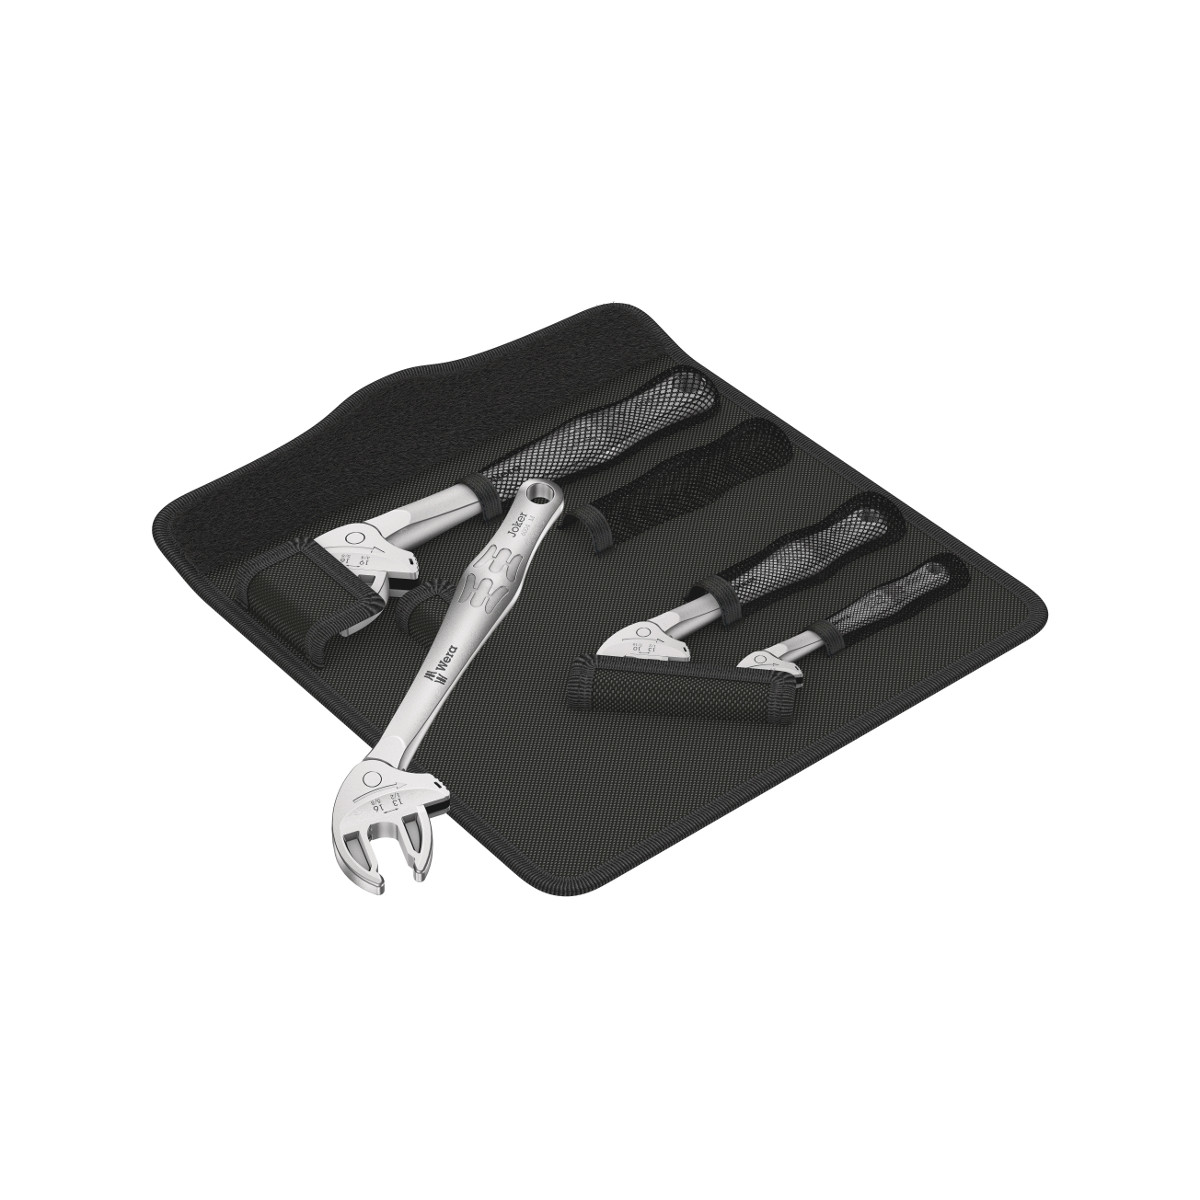 Wera 05020110001 self-setting spanner set Joker 6004, 4pcs.